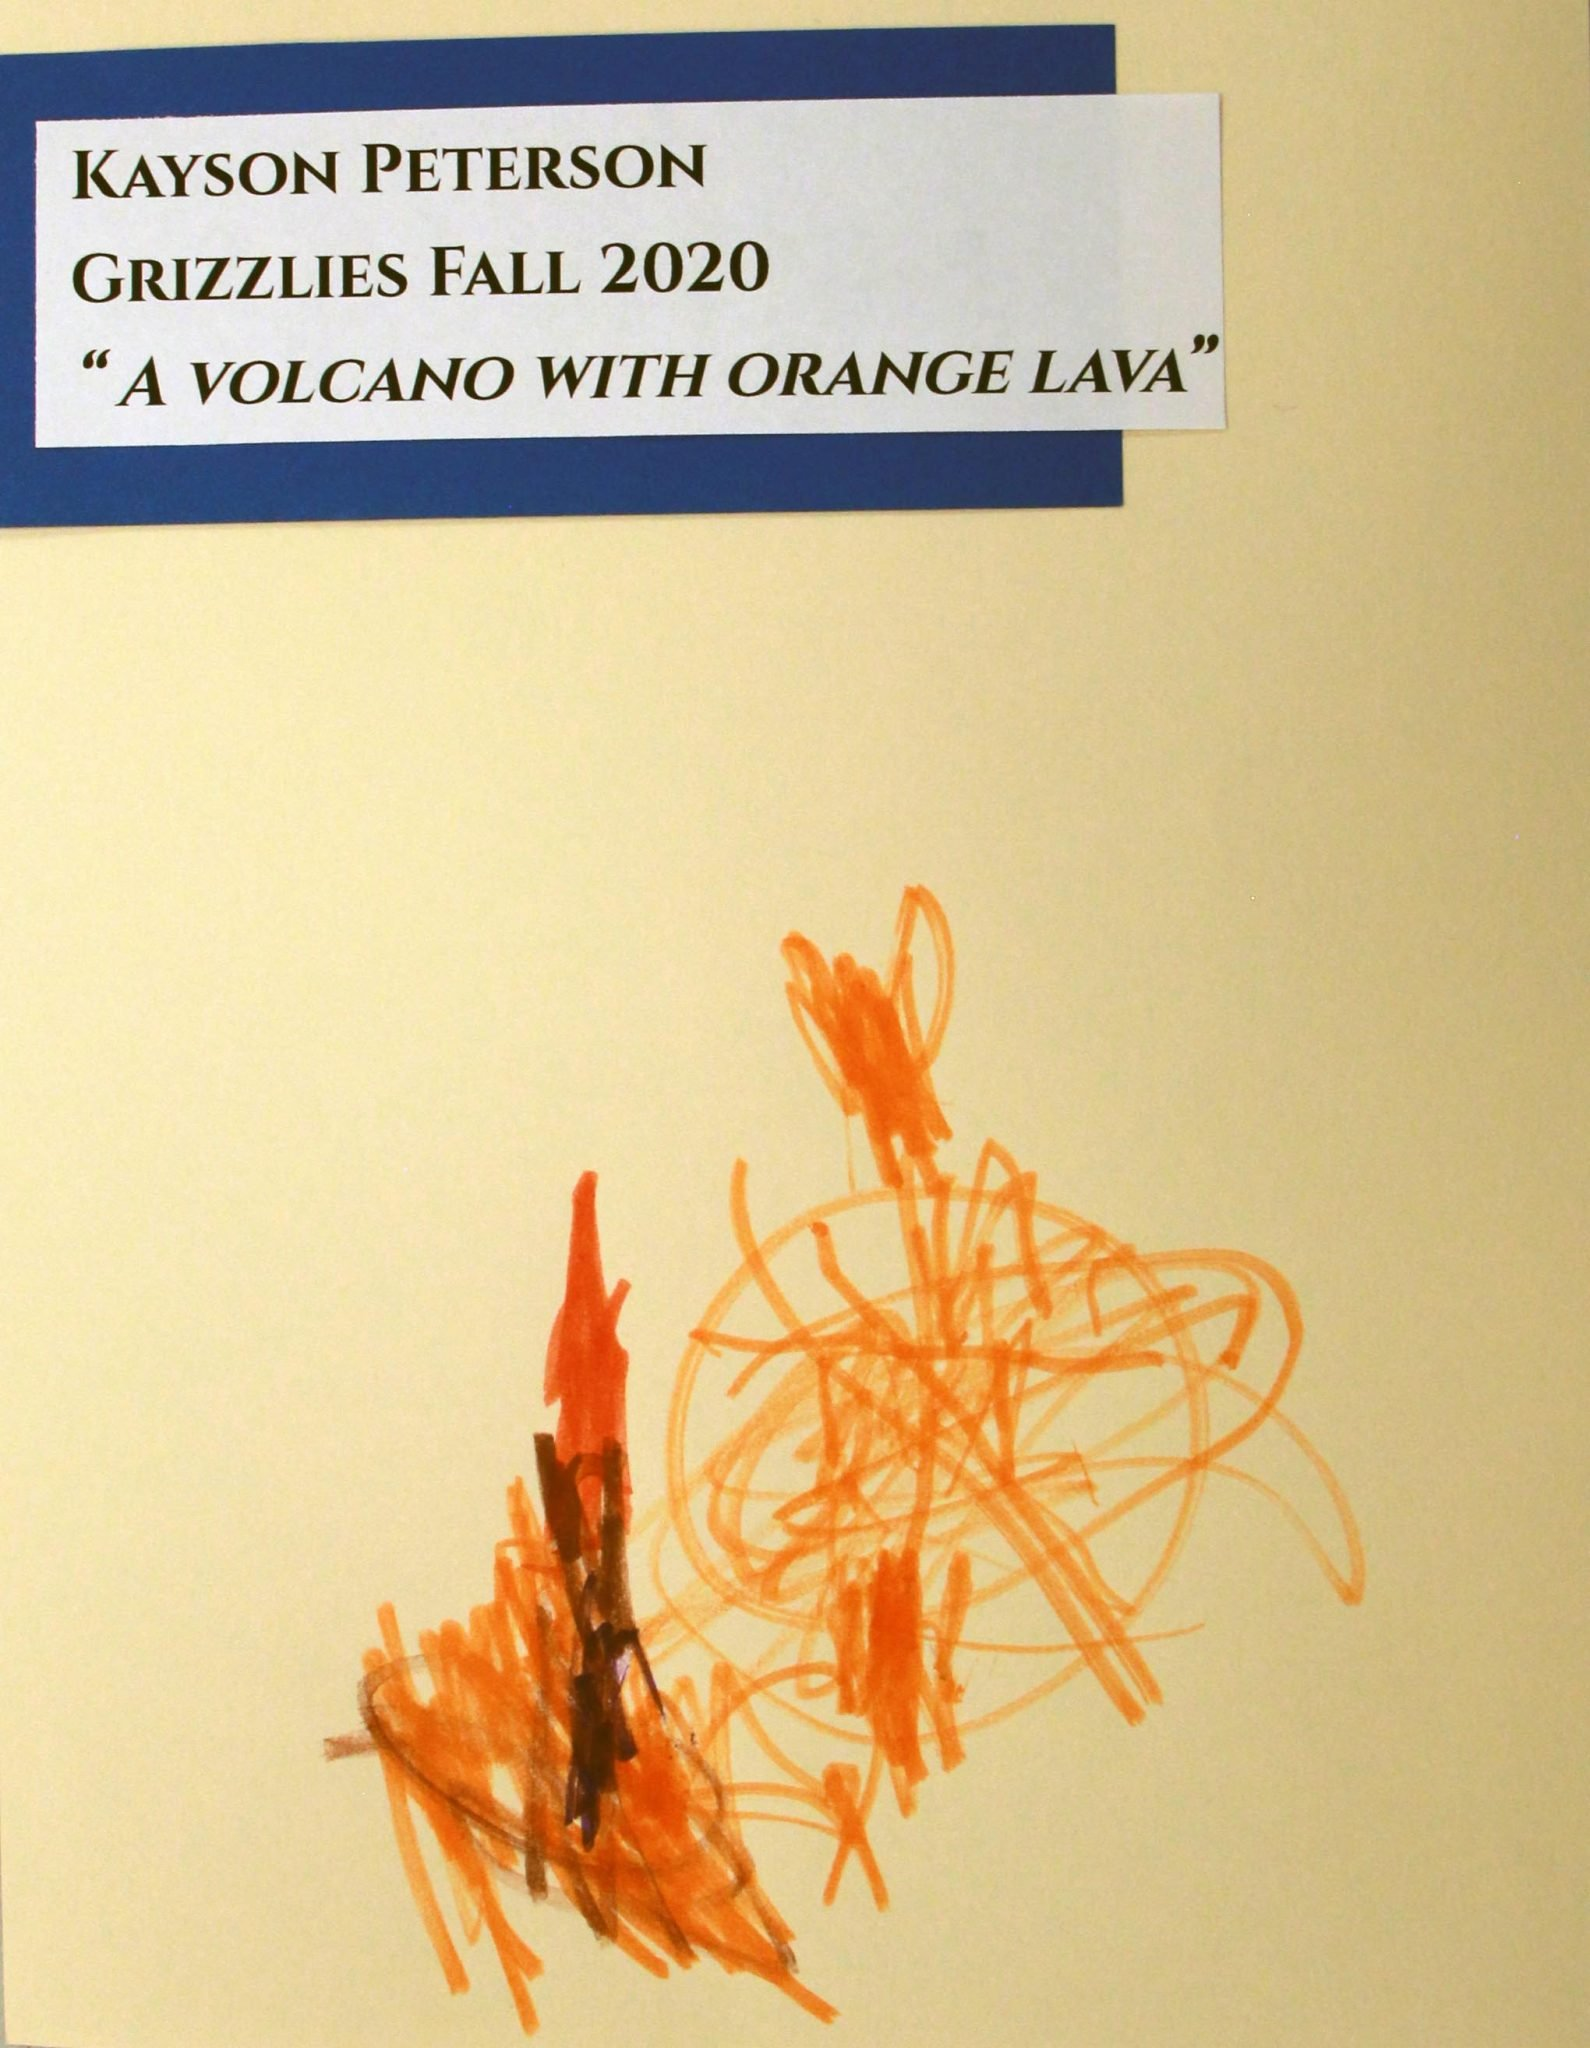 Kayson Peterson, of Grizzlies group, drawing, Fall 2020